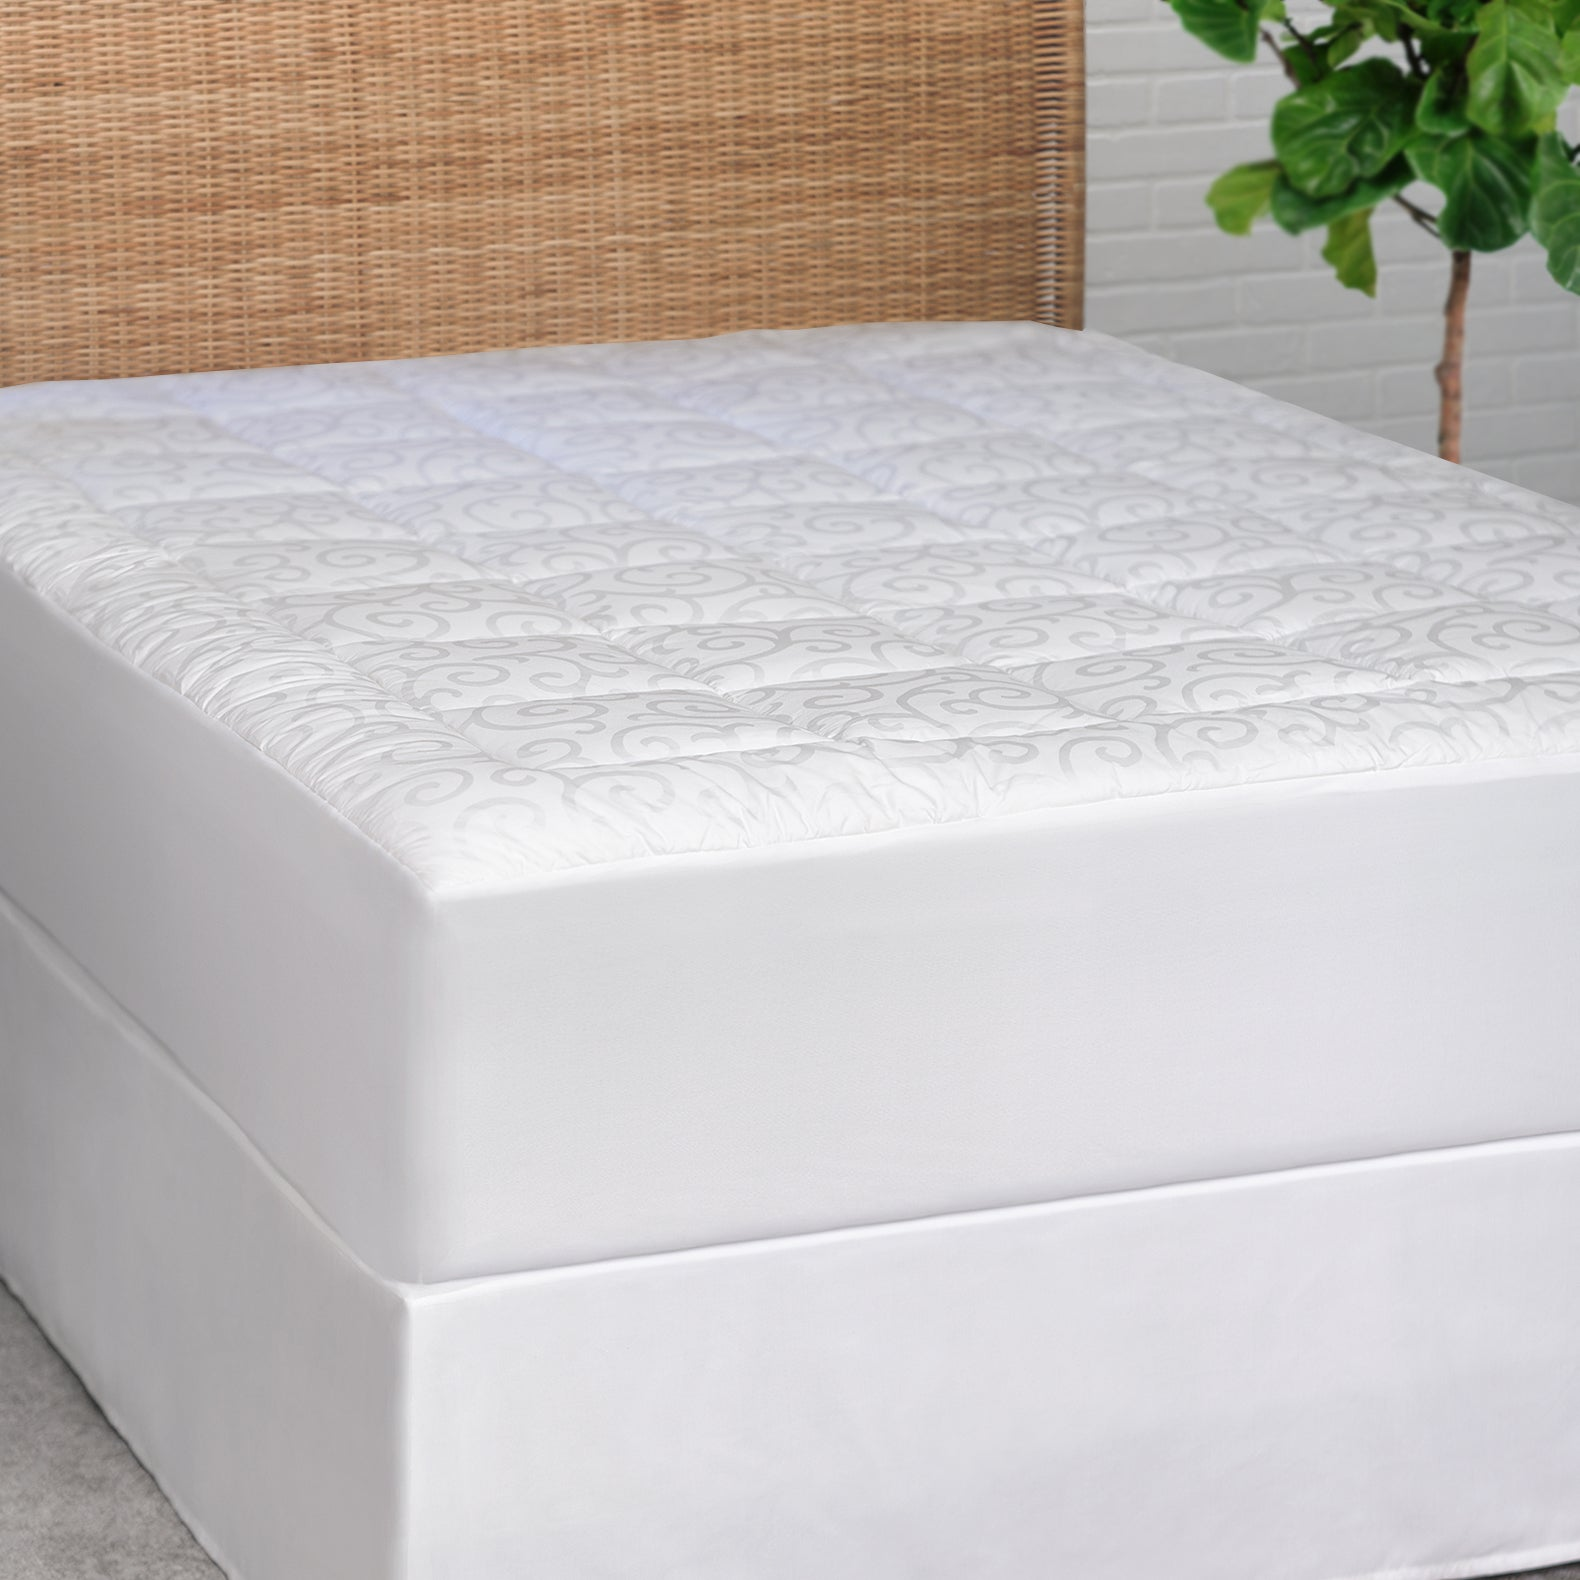 Candice Olson Luxury Jacquard Mattress Pad